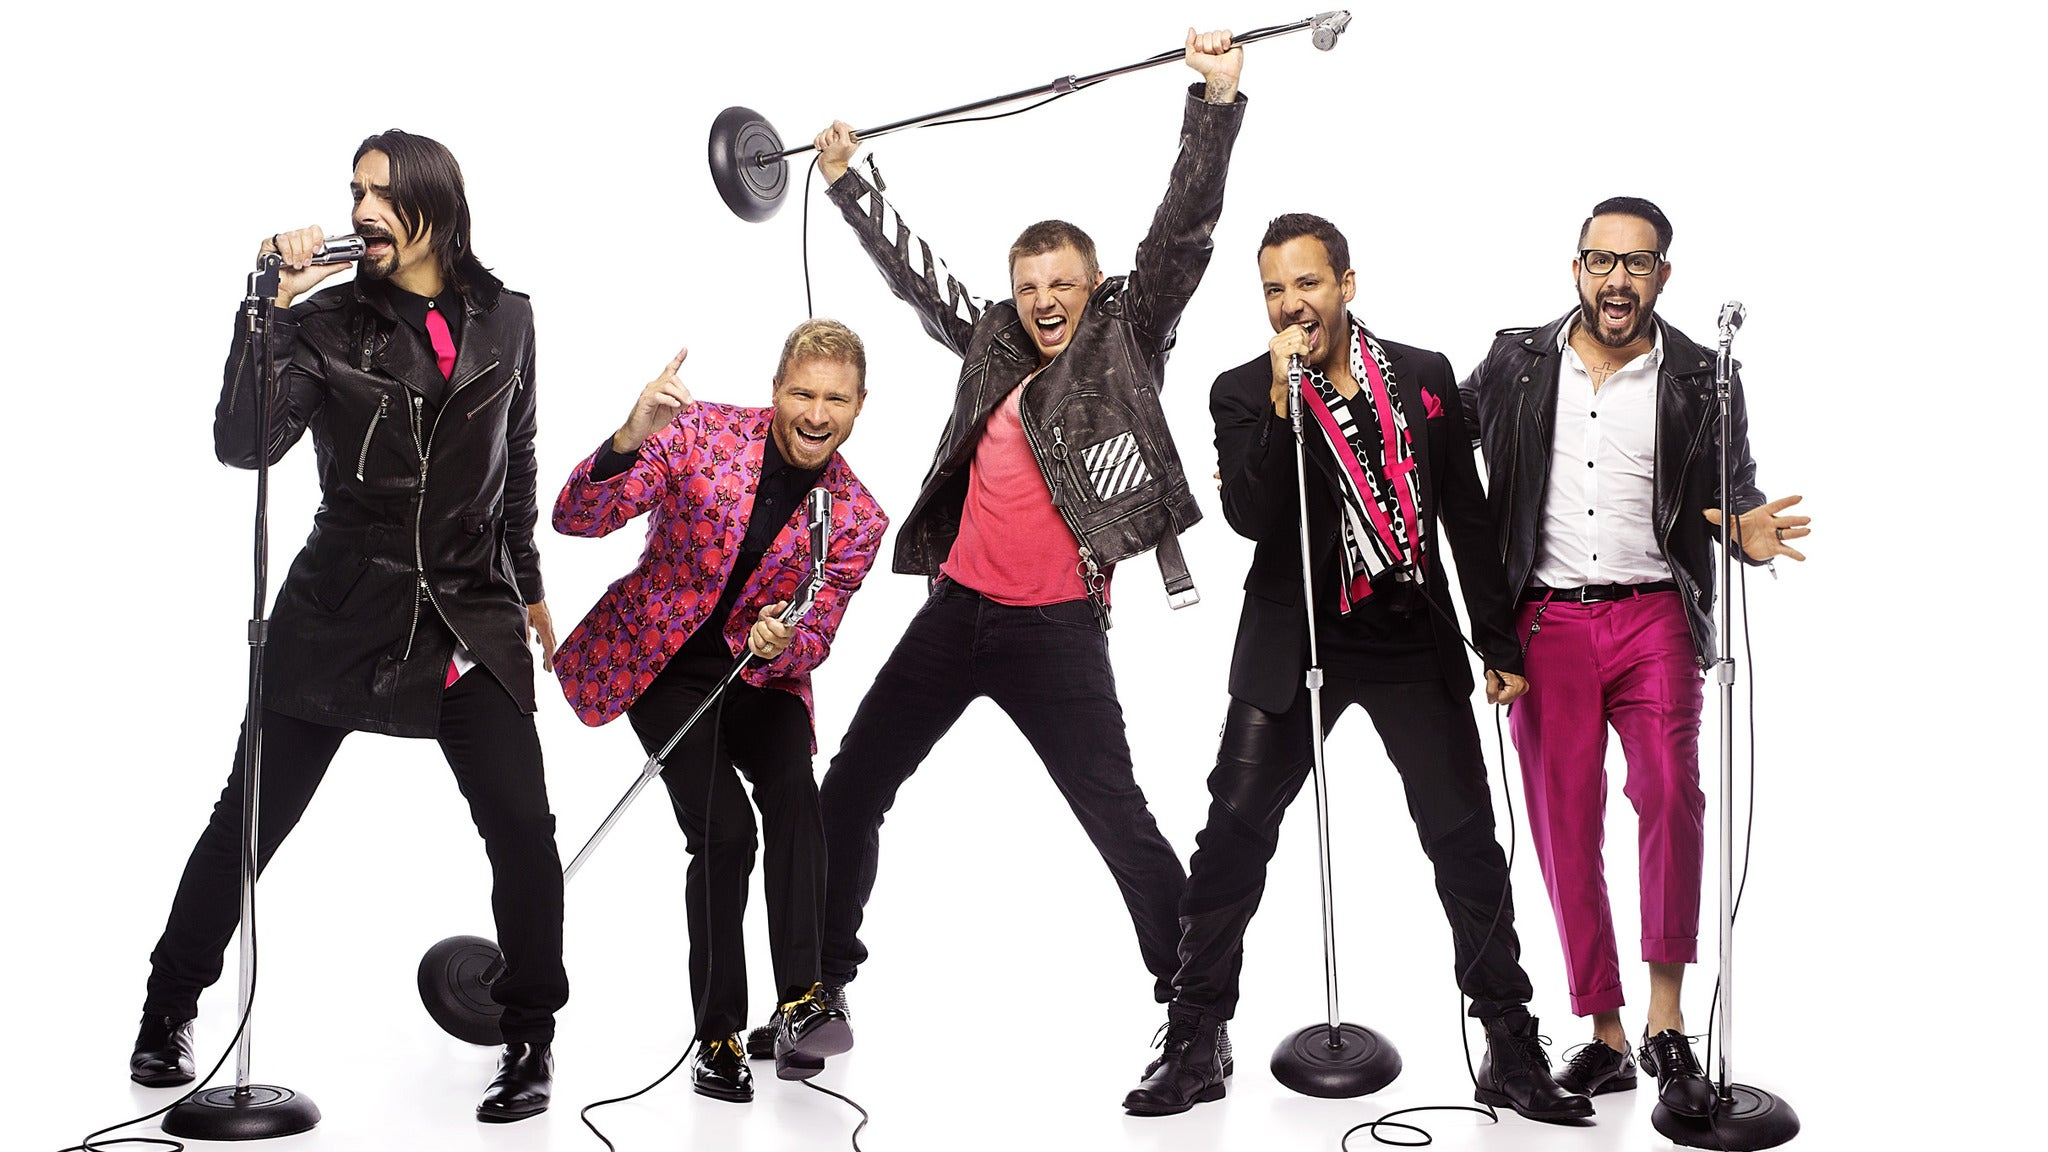 Q100's Q-Topia featuring Backstreet Boys and more